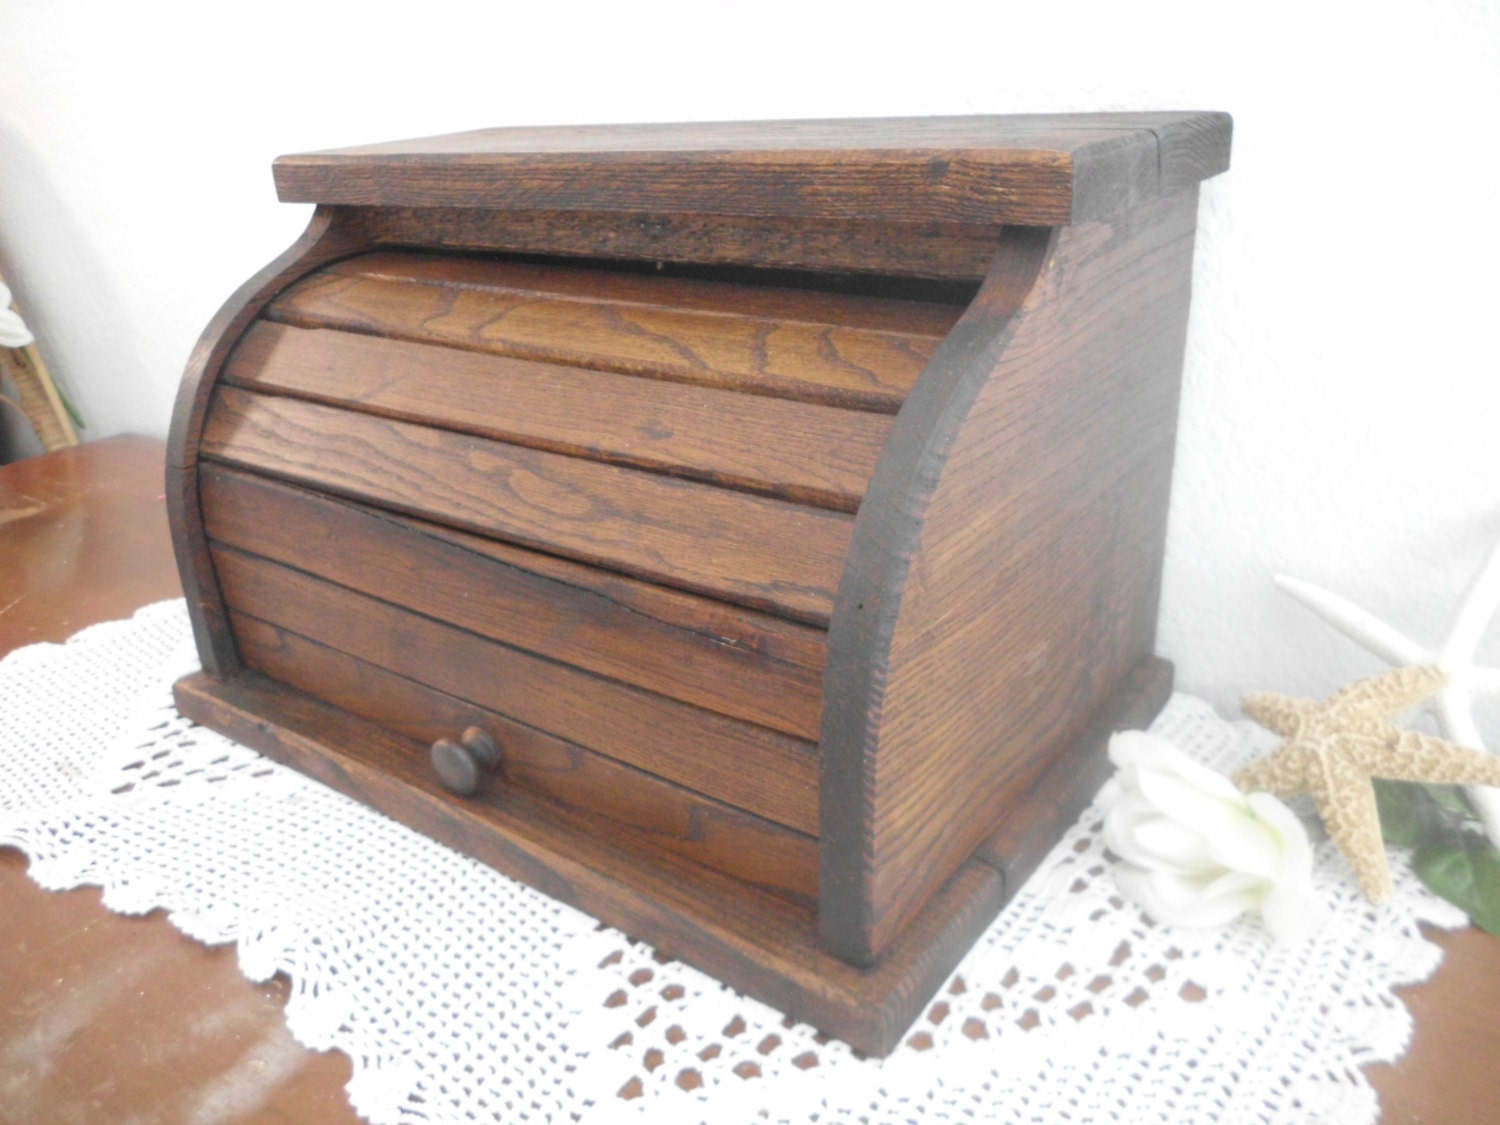 Bread Box Wood Brown Vintage Wooden Storage Kitchen Rustic